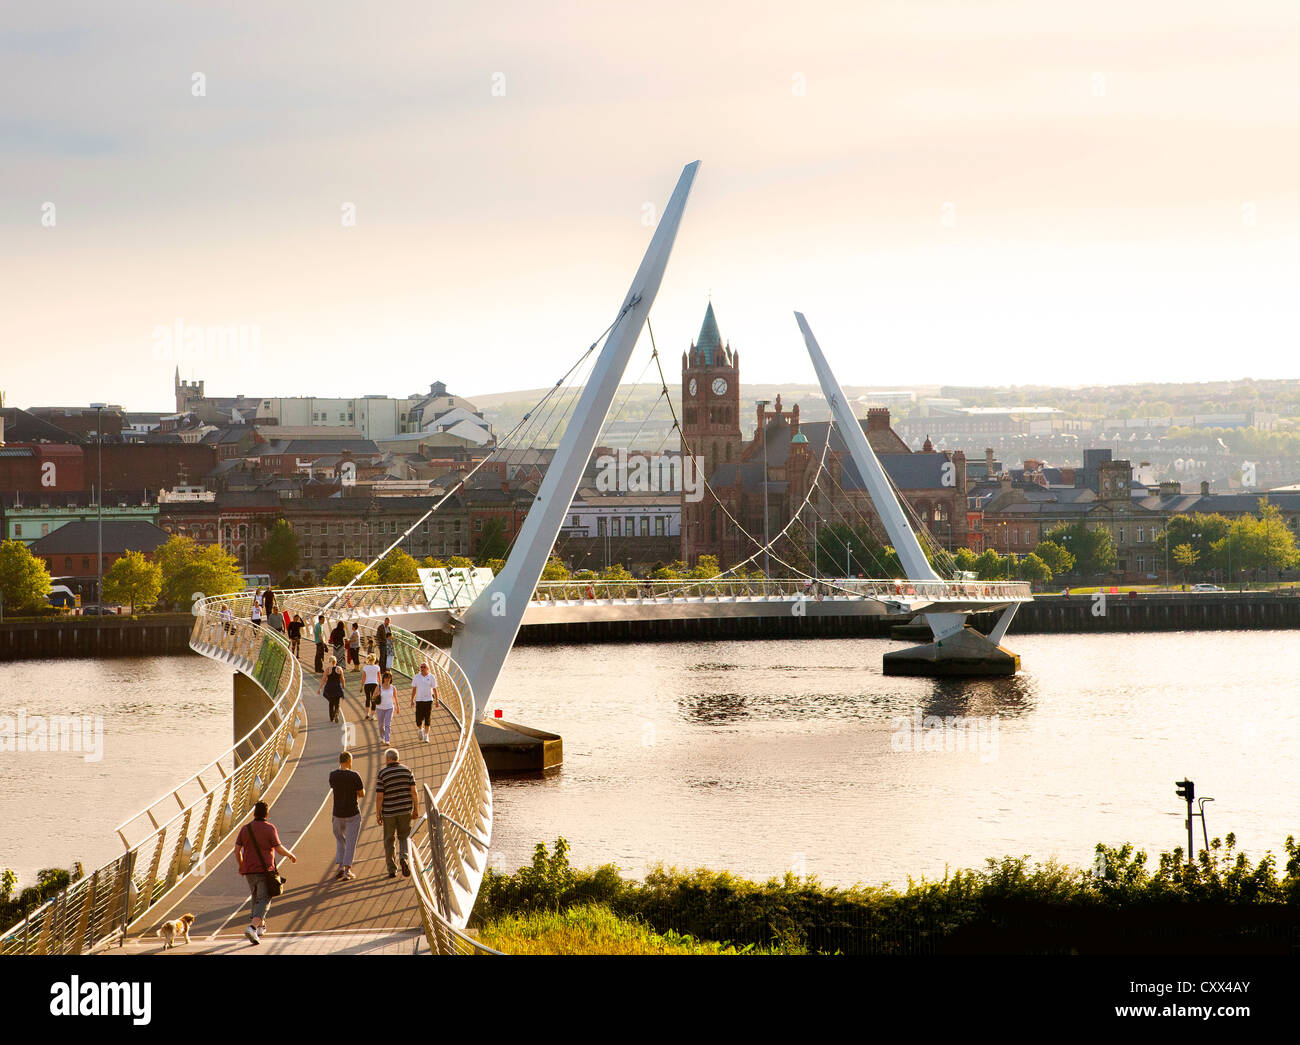 Derry Peace Bridge, Northern Ireland - Stock Image